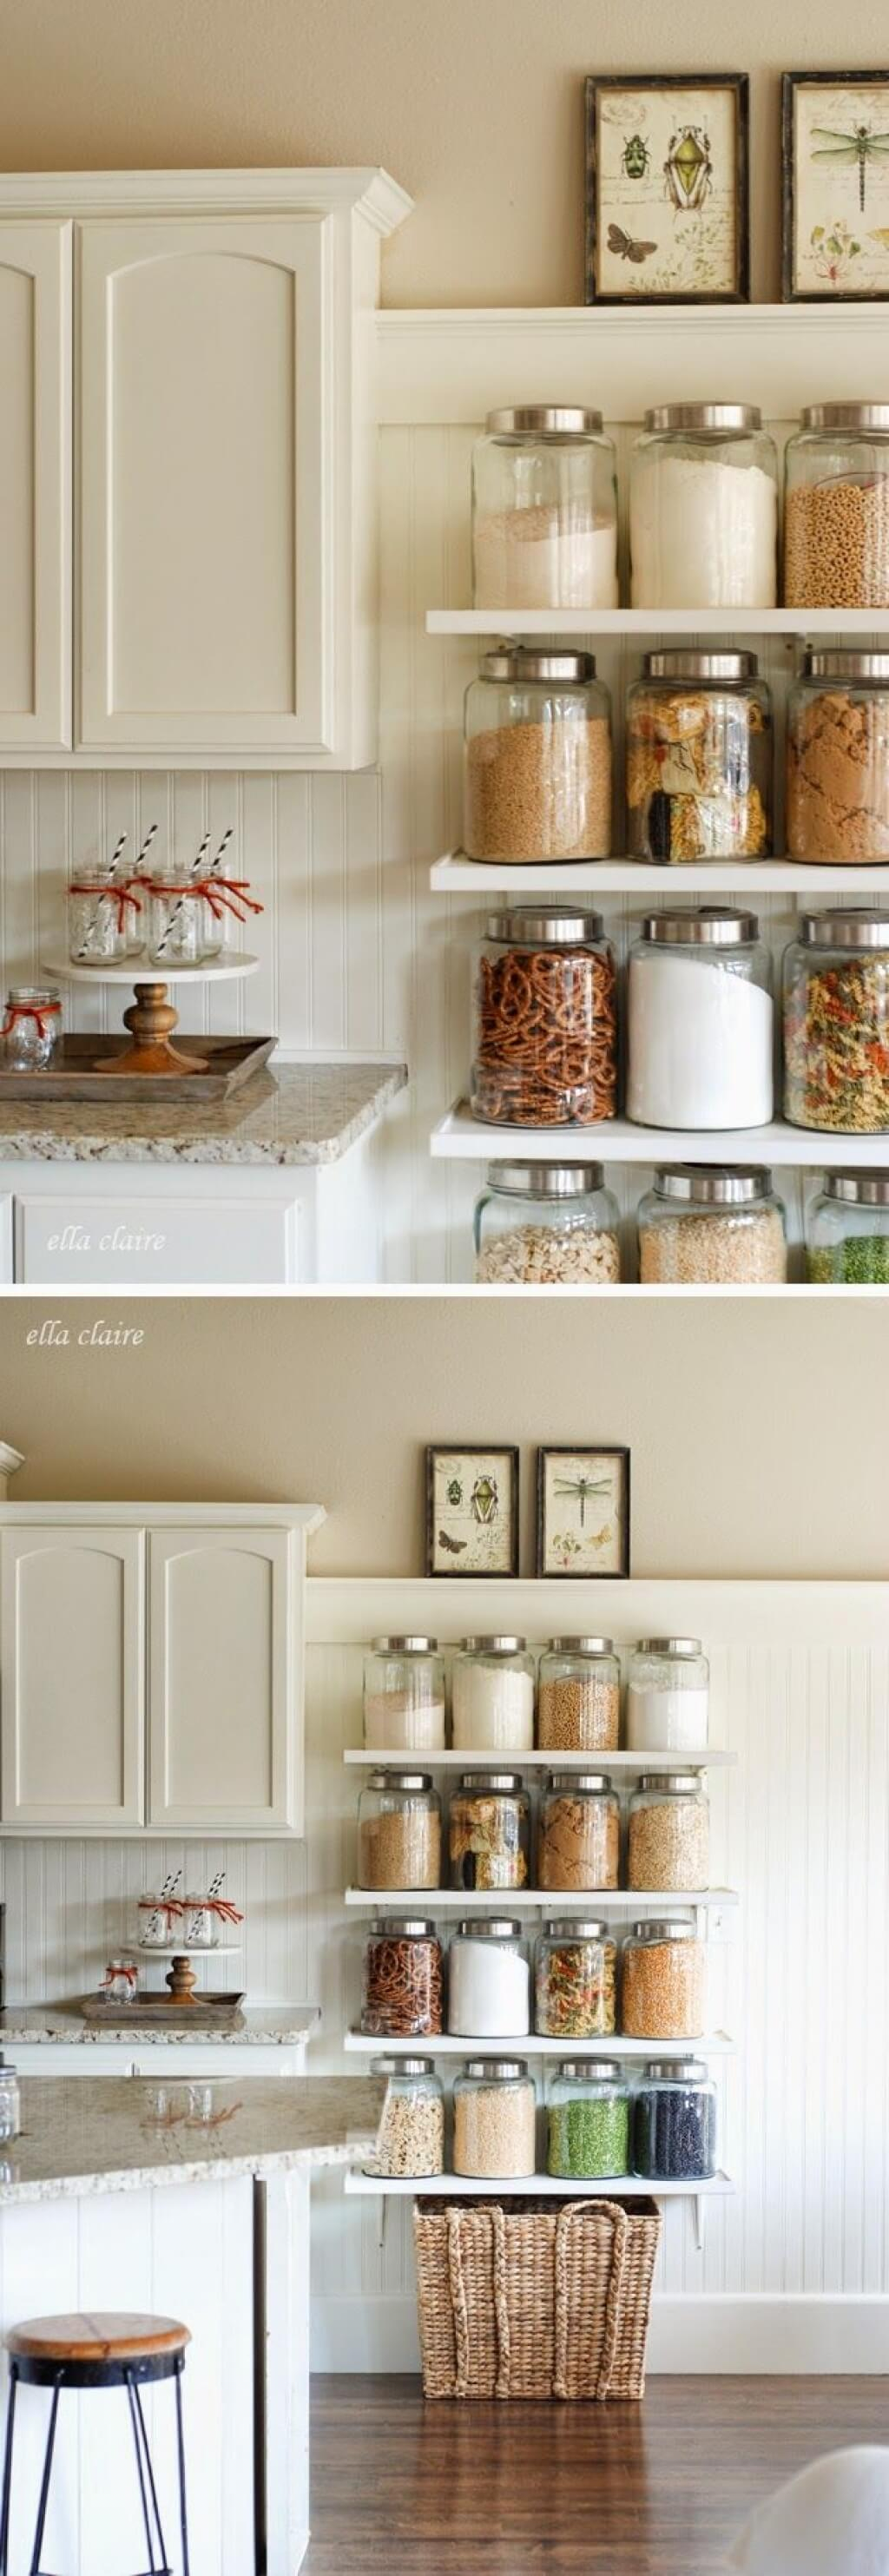 Kitchen Design Ideas Org ~ Best small kitchen storage organization ideas and